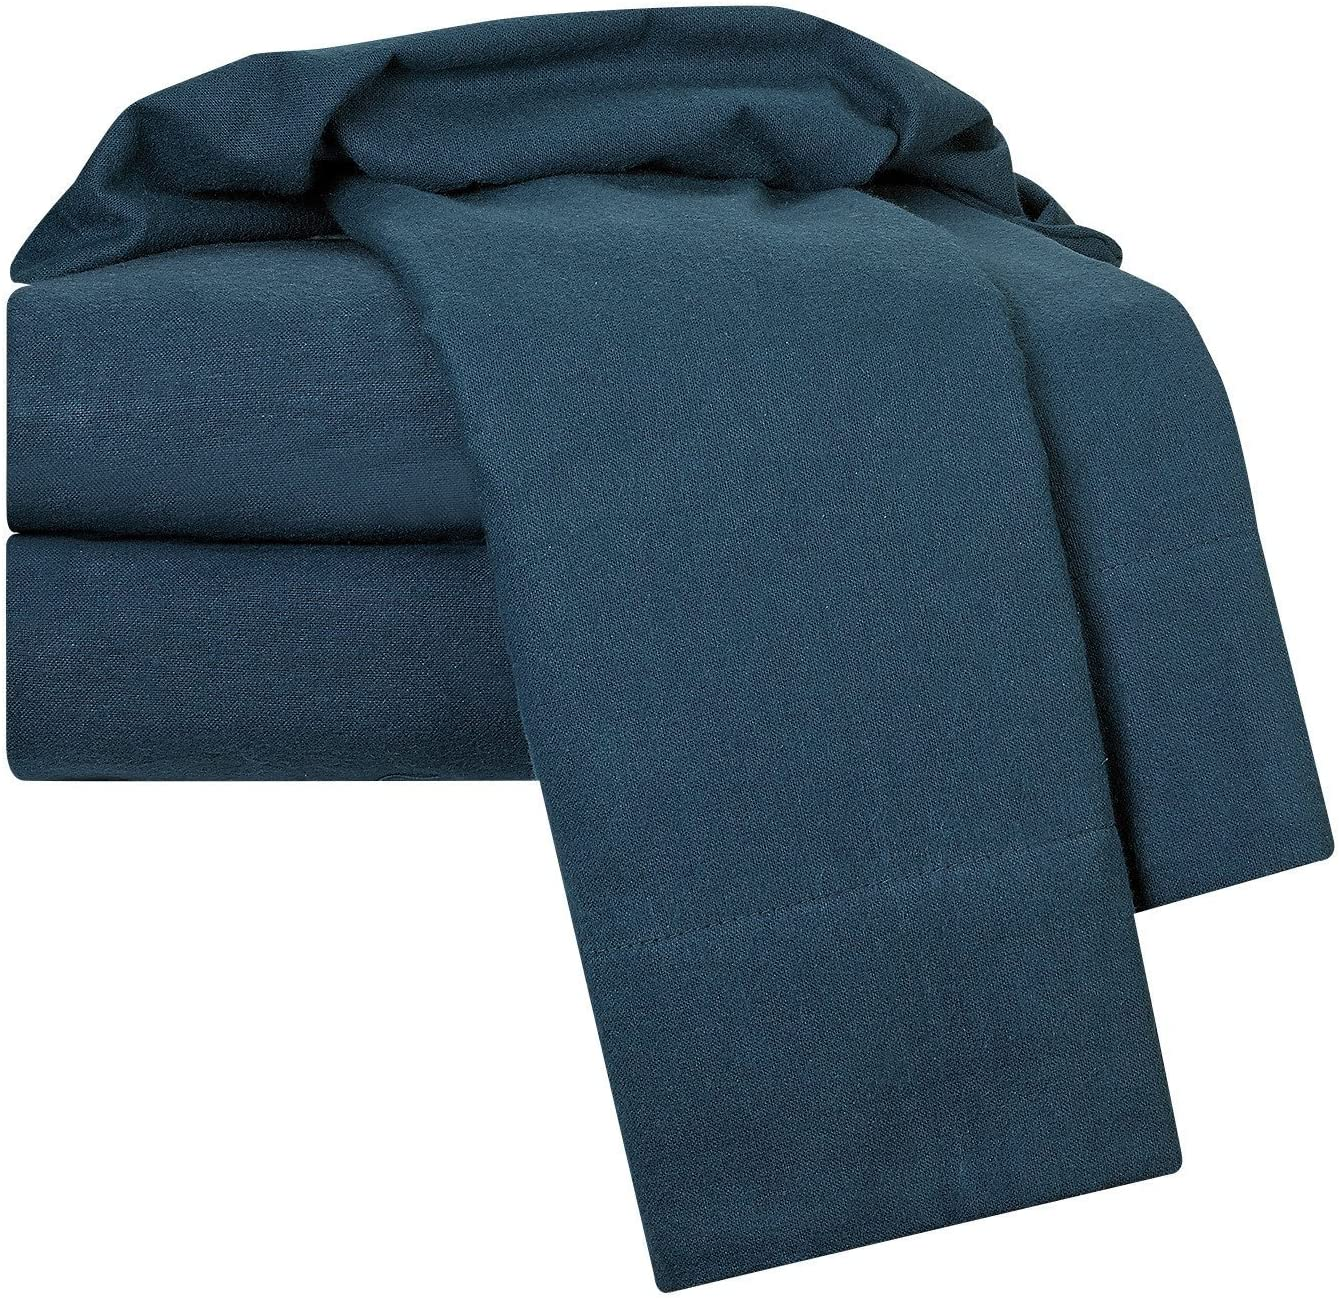 Luxurious Soft Hypoallergenic and Very Silky Bedding Fabric Enjoy A Comfortable Sleeping Experience Nestl Bedding Heavyweight 100/% Cotton Flannel Sheet Set Dark Gray Twin